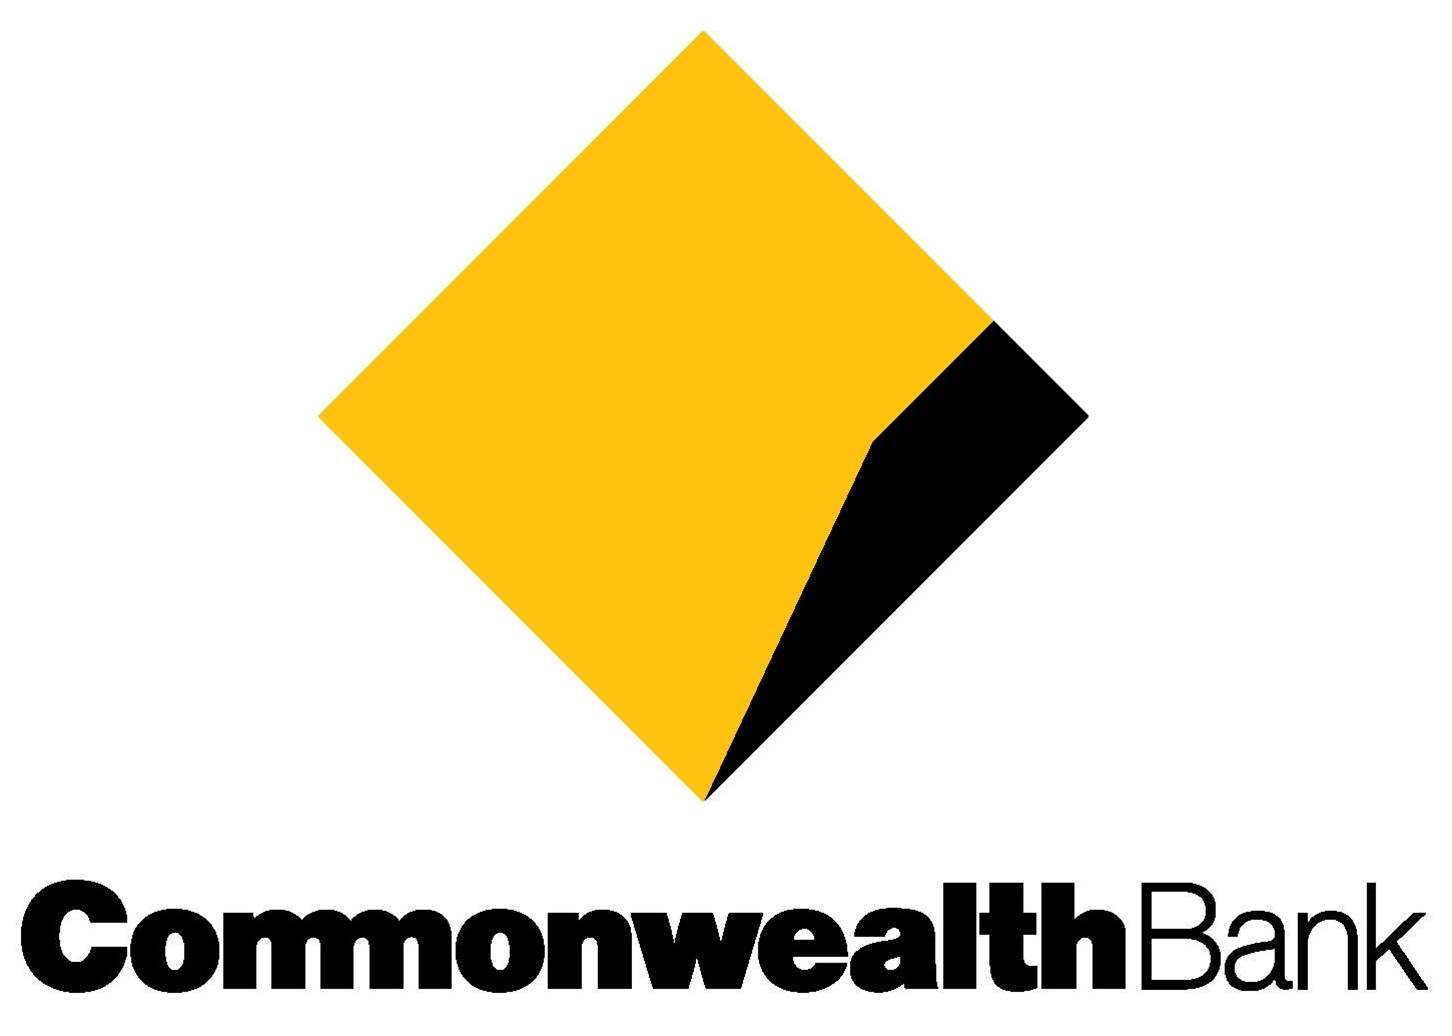 CommBank blames outage on security update